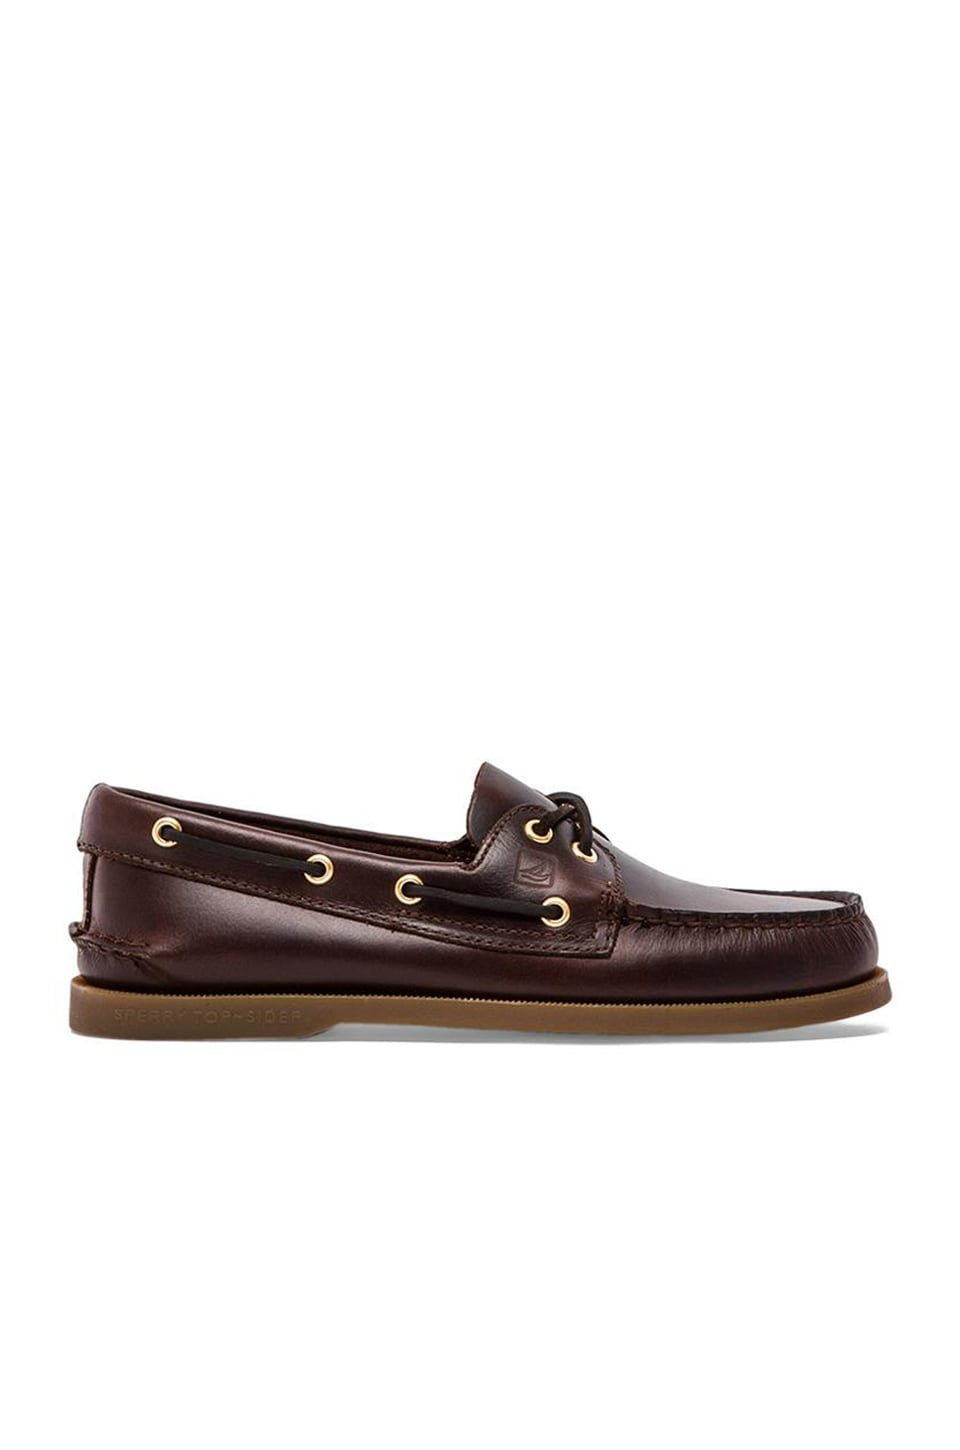 A/O by Sperry Top-Sider